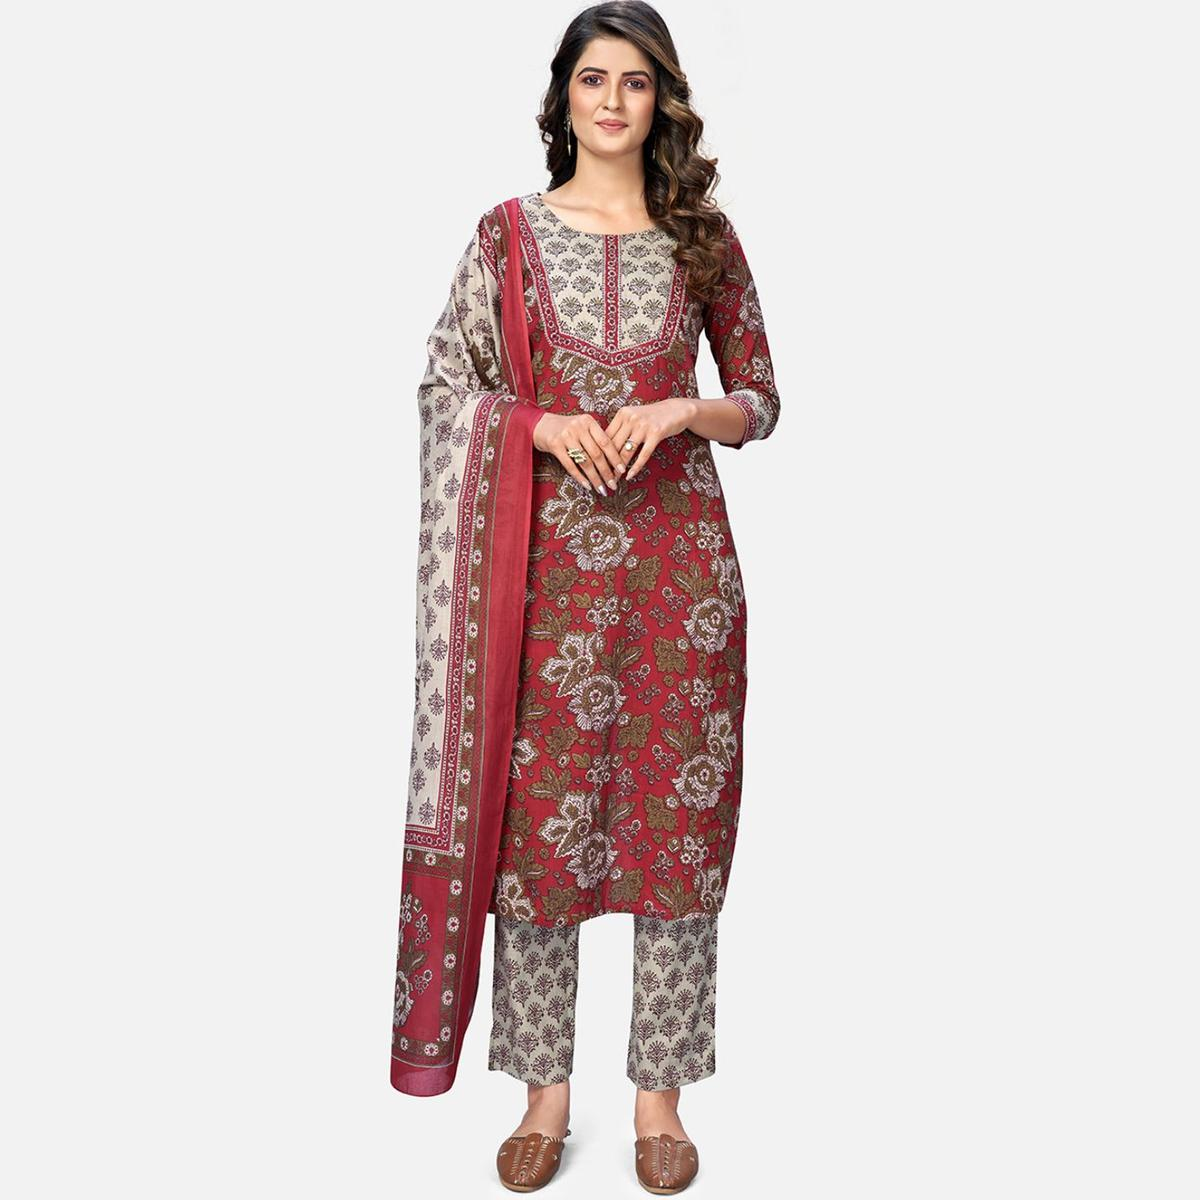 Vbuyz Women's Printed & Embroidered Straight Cotton Red Kurta With Pant & Dupatta